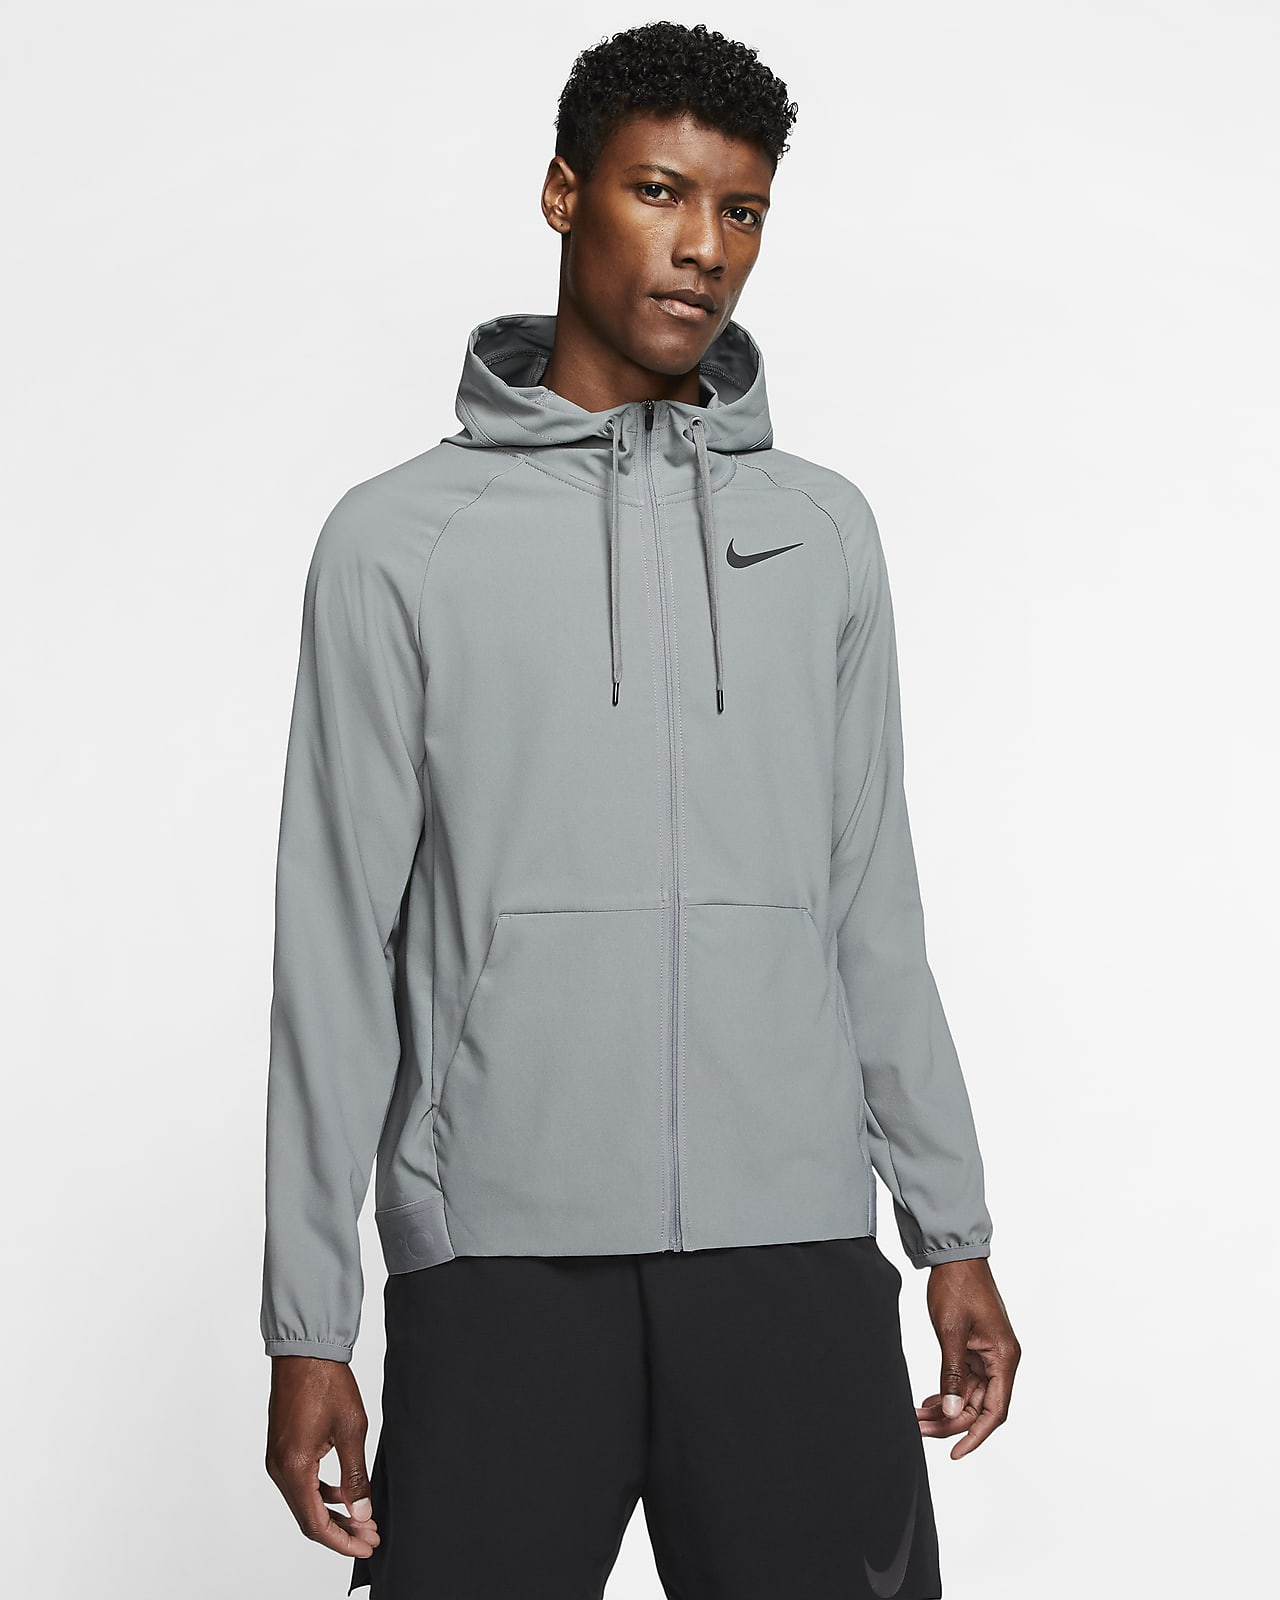 noche Apto A la verdad  Nike Flex Men's Full-Zip Training Jacket. Nike.com